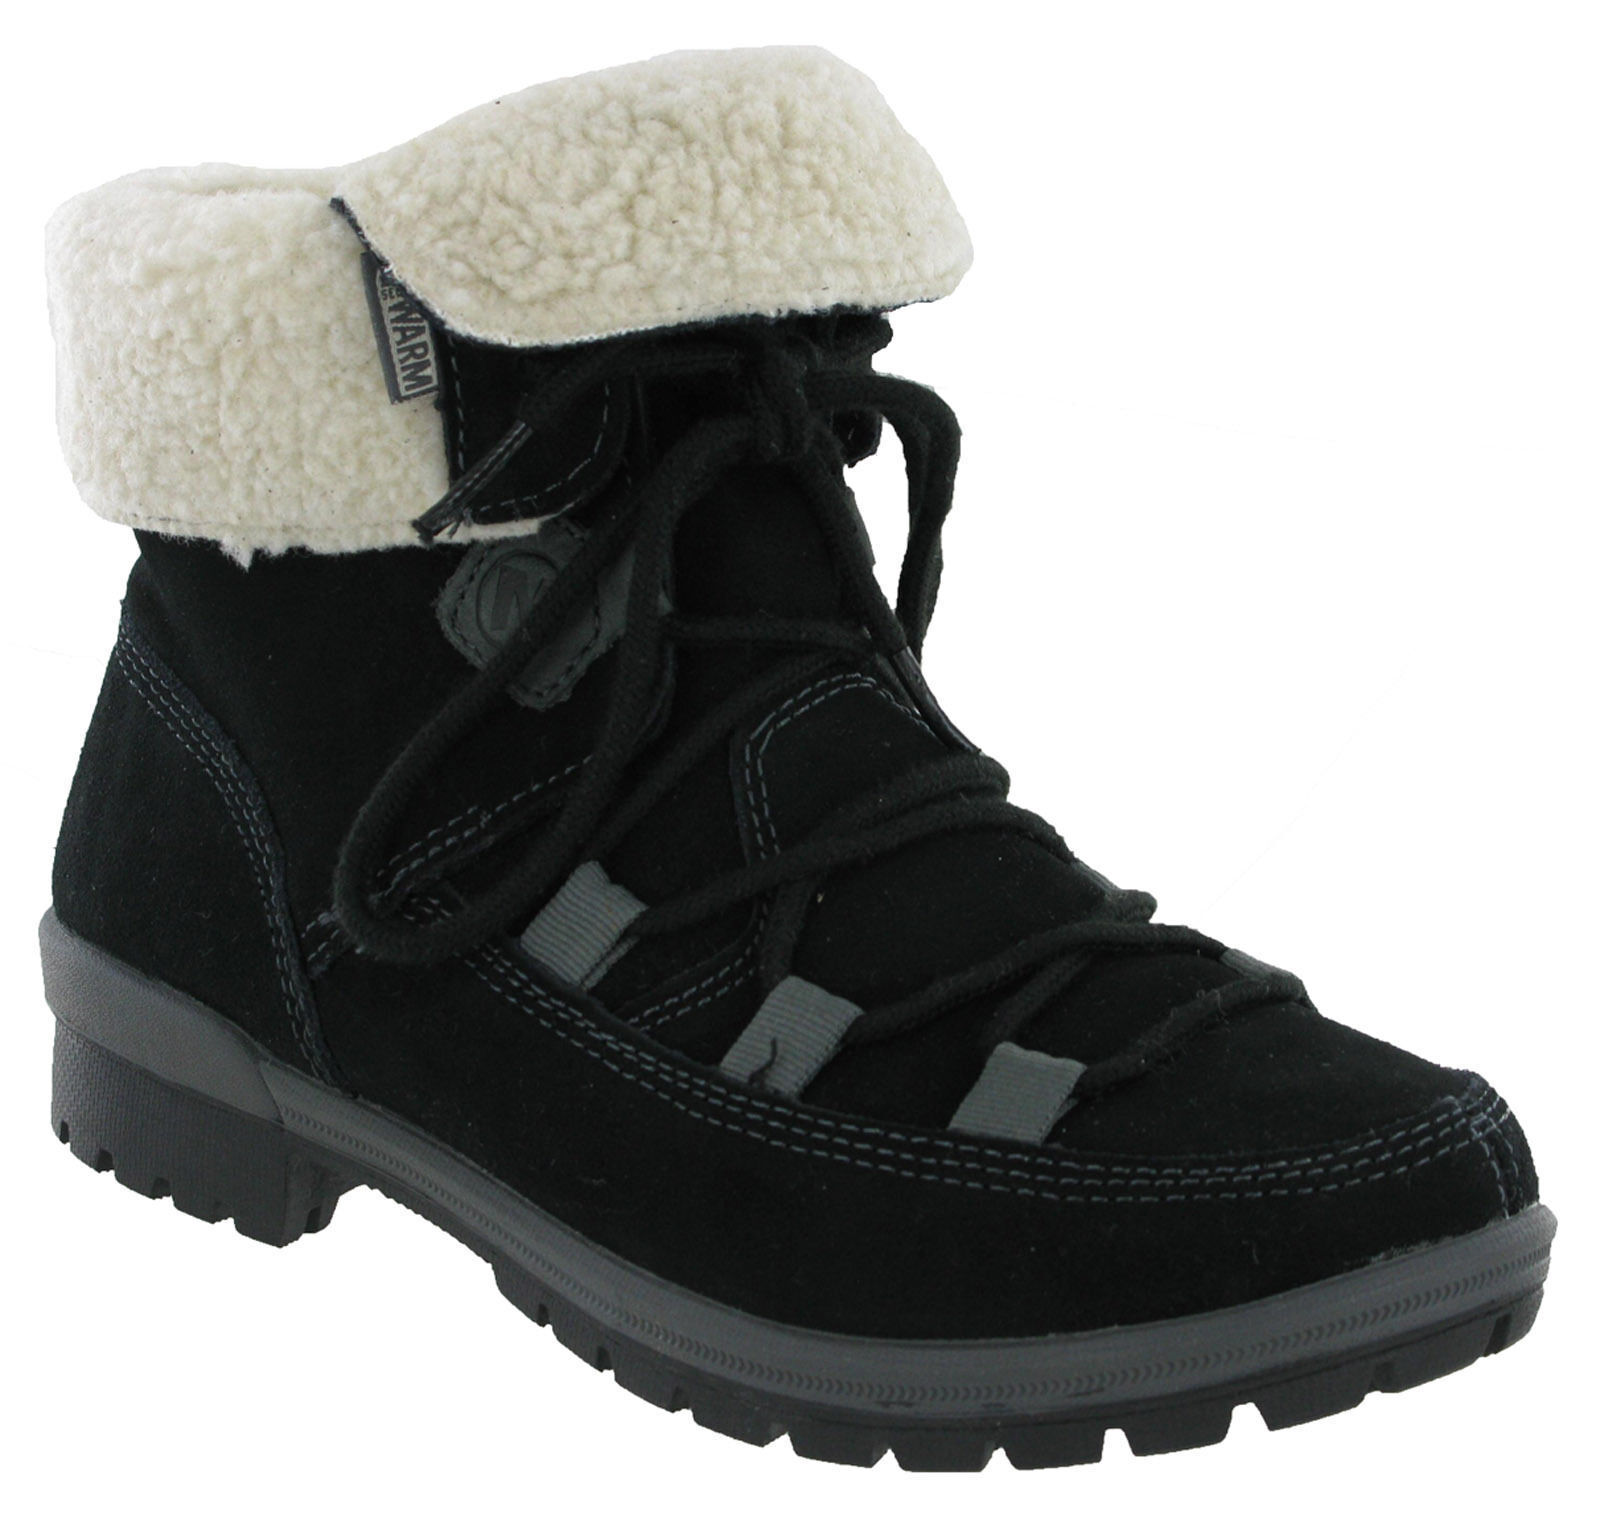 Merrell Emery Lace calido forro polar Mujer botas Ankle botas Mujer de senderismo negro uk3.5-8.5 acd478